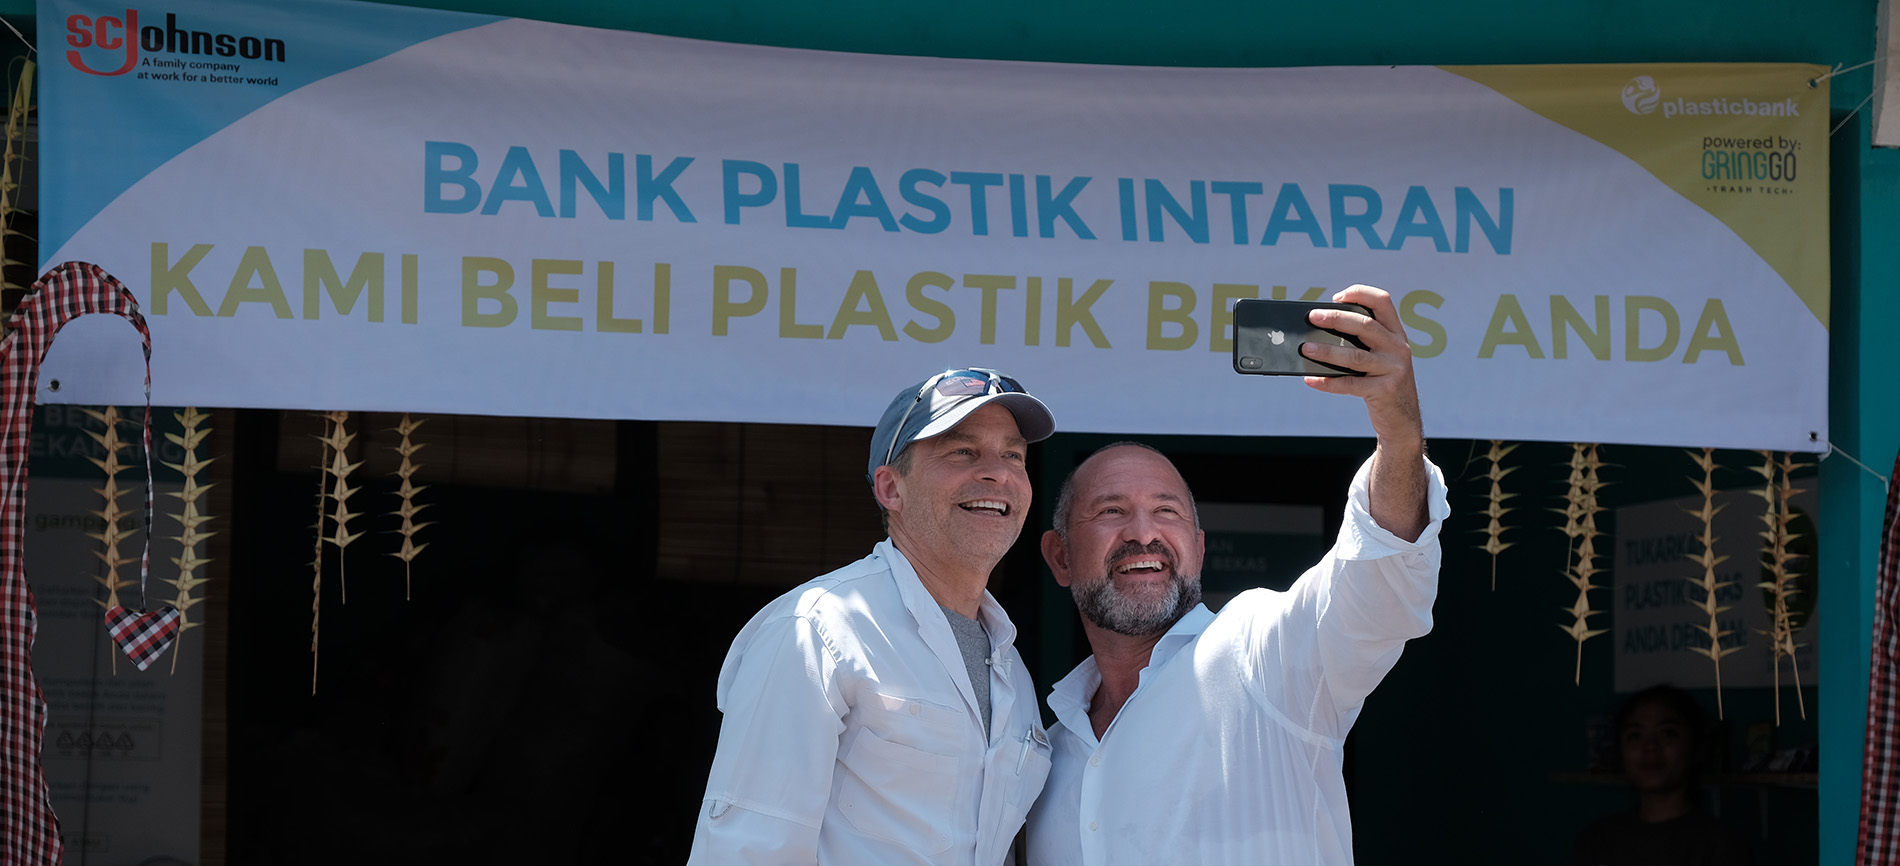 David Katz taking a selfie in front of the Plastic Bank Opening sign